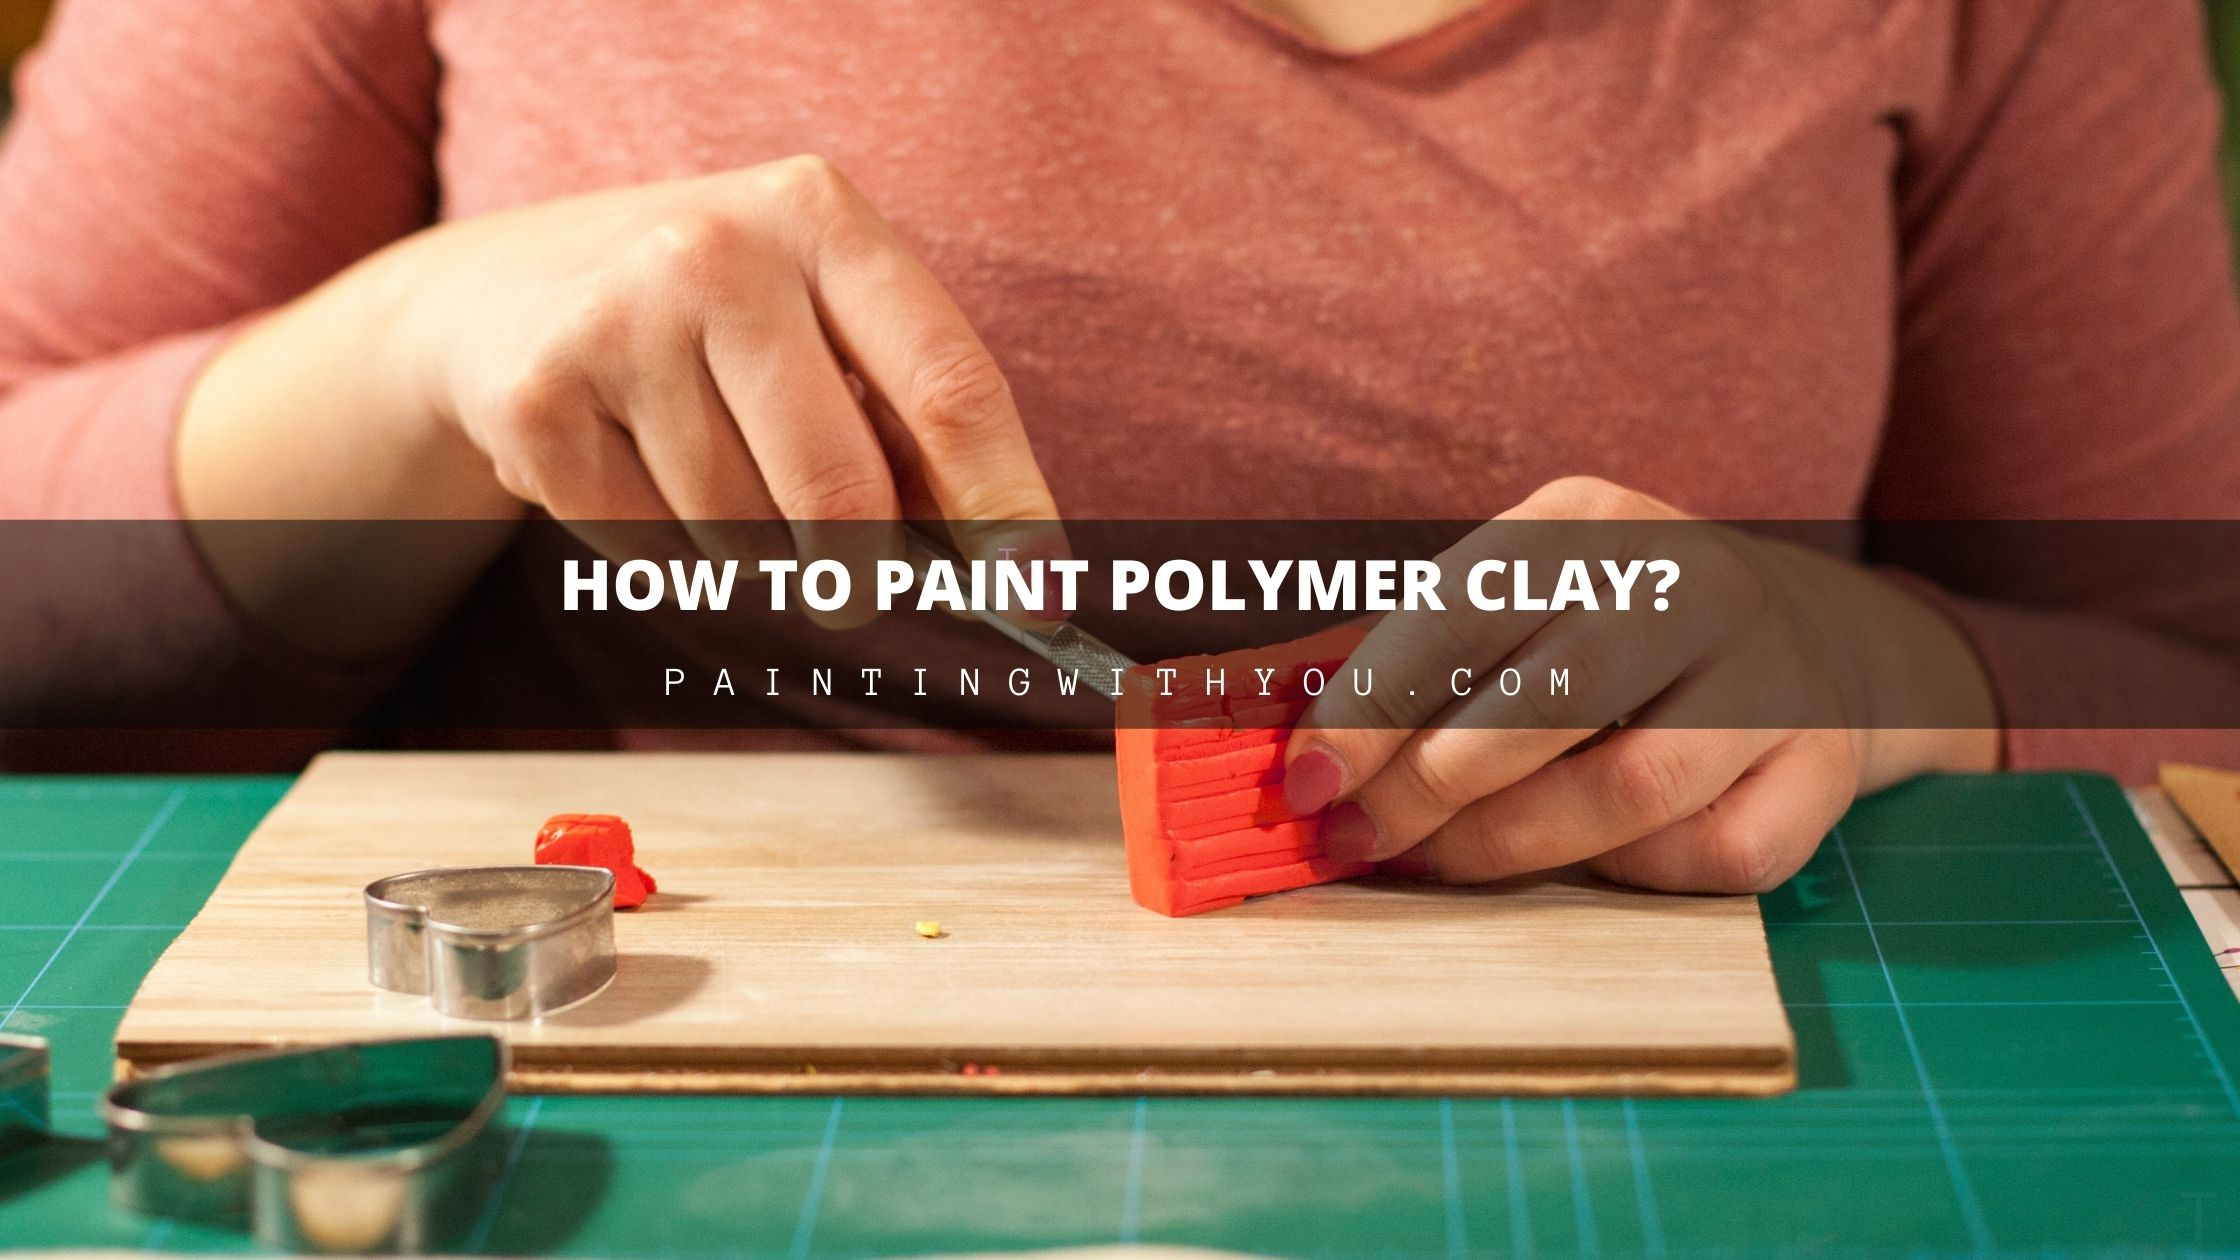 How To Paint Polymer Clay?